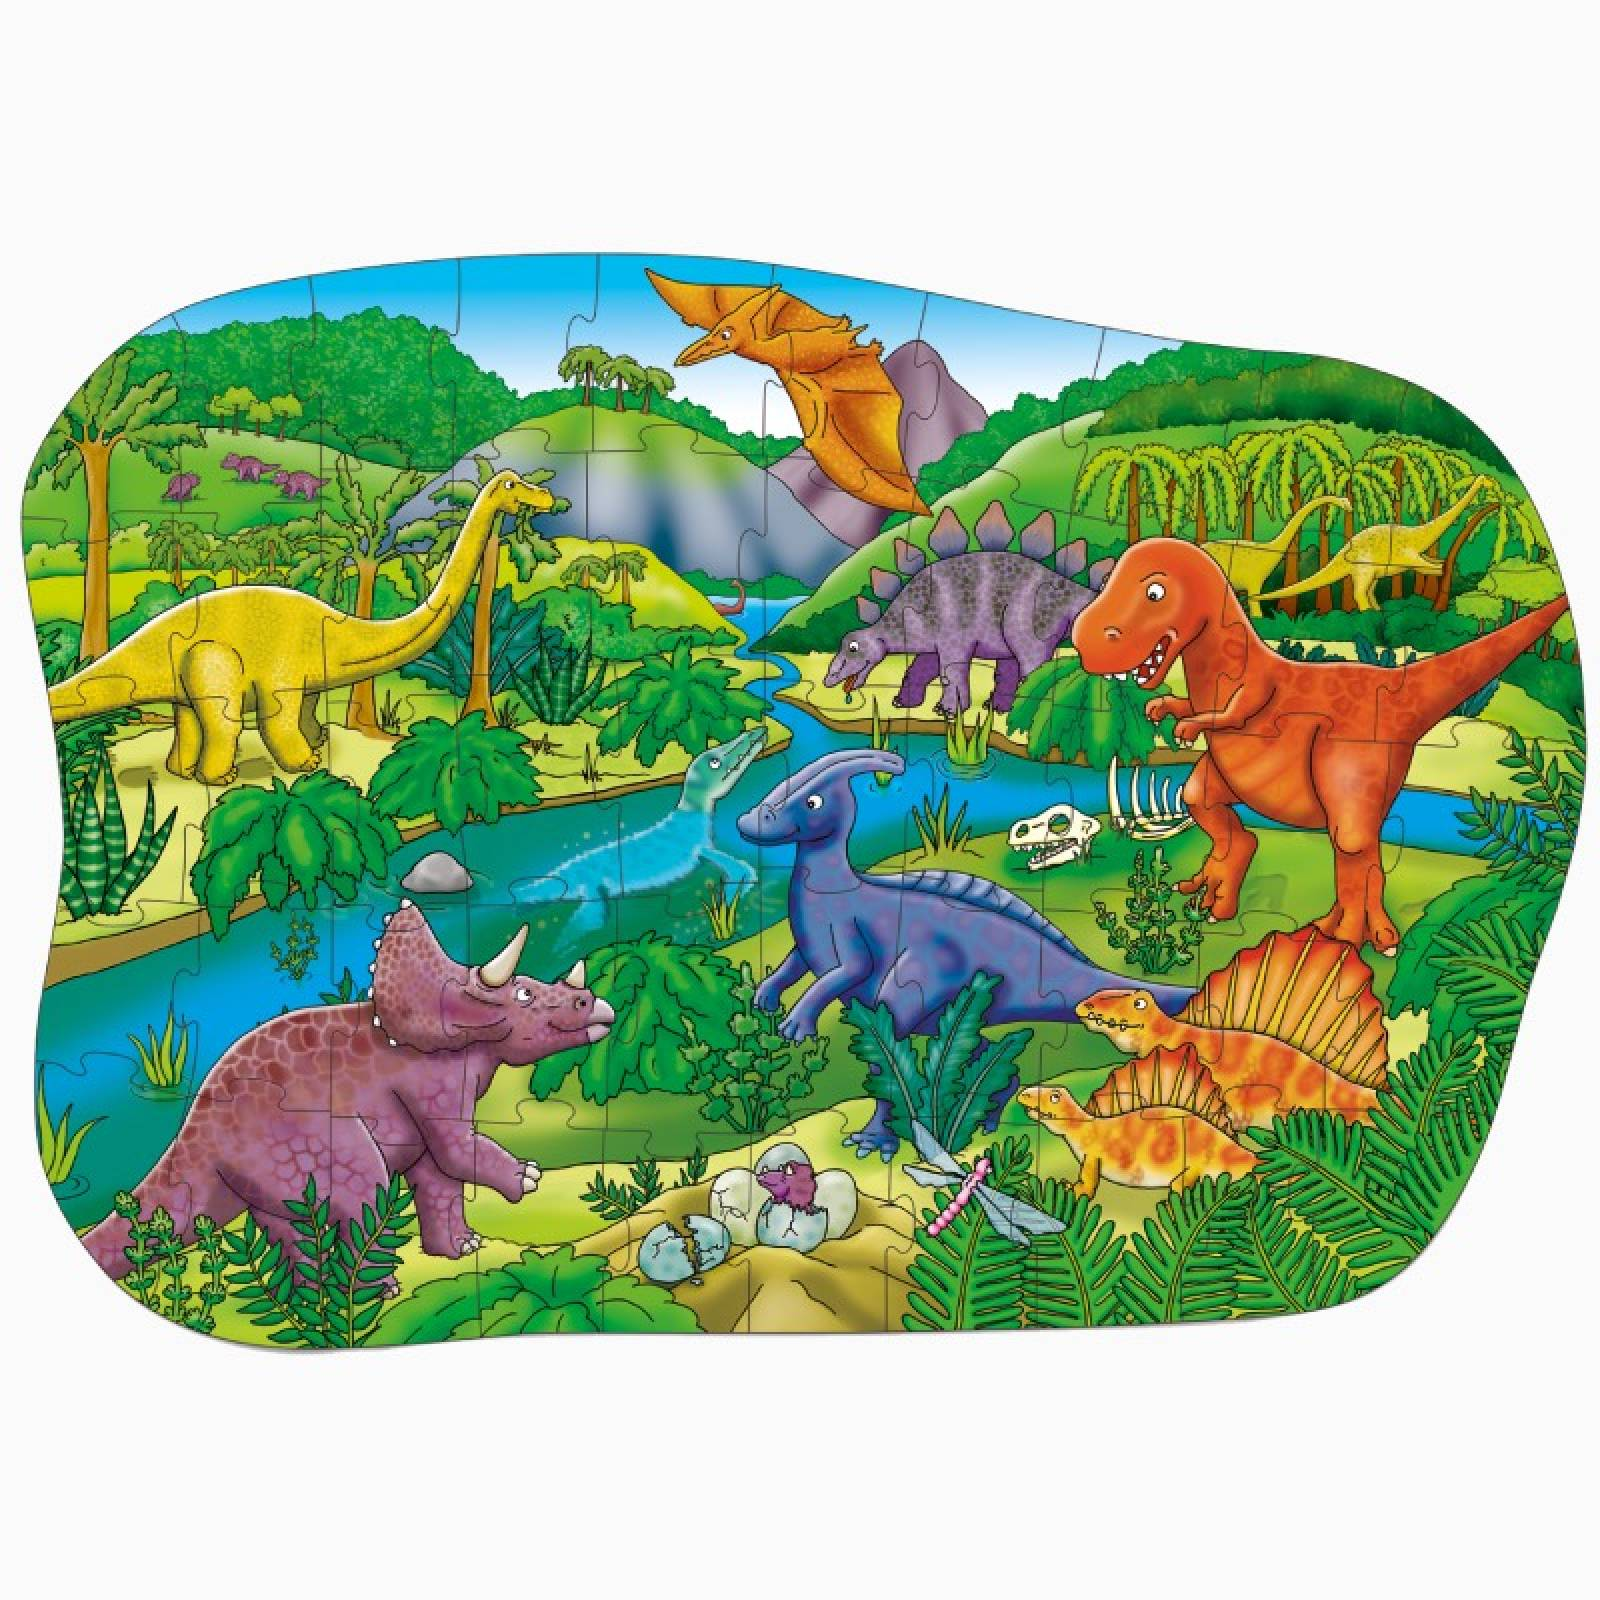 Big Dinosaurs 50 Piece Jigsaw Puzzle By Orchard Toys 4+ thumbnails